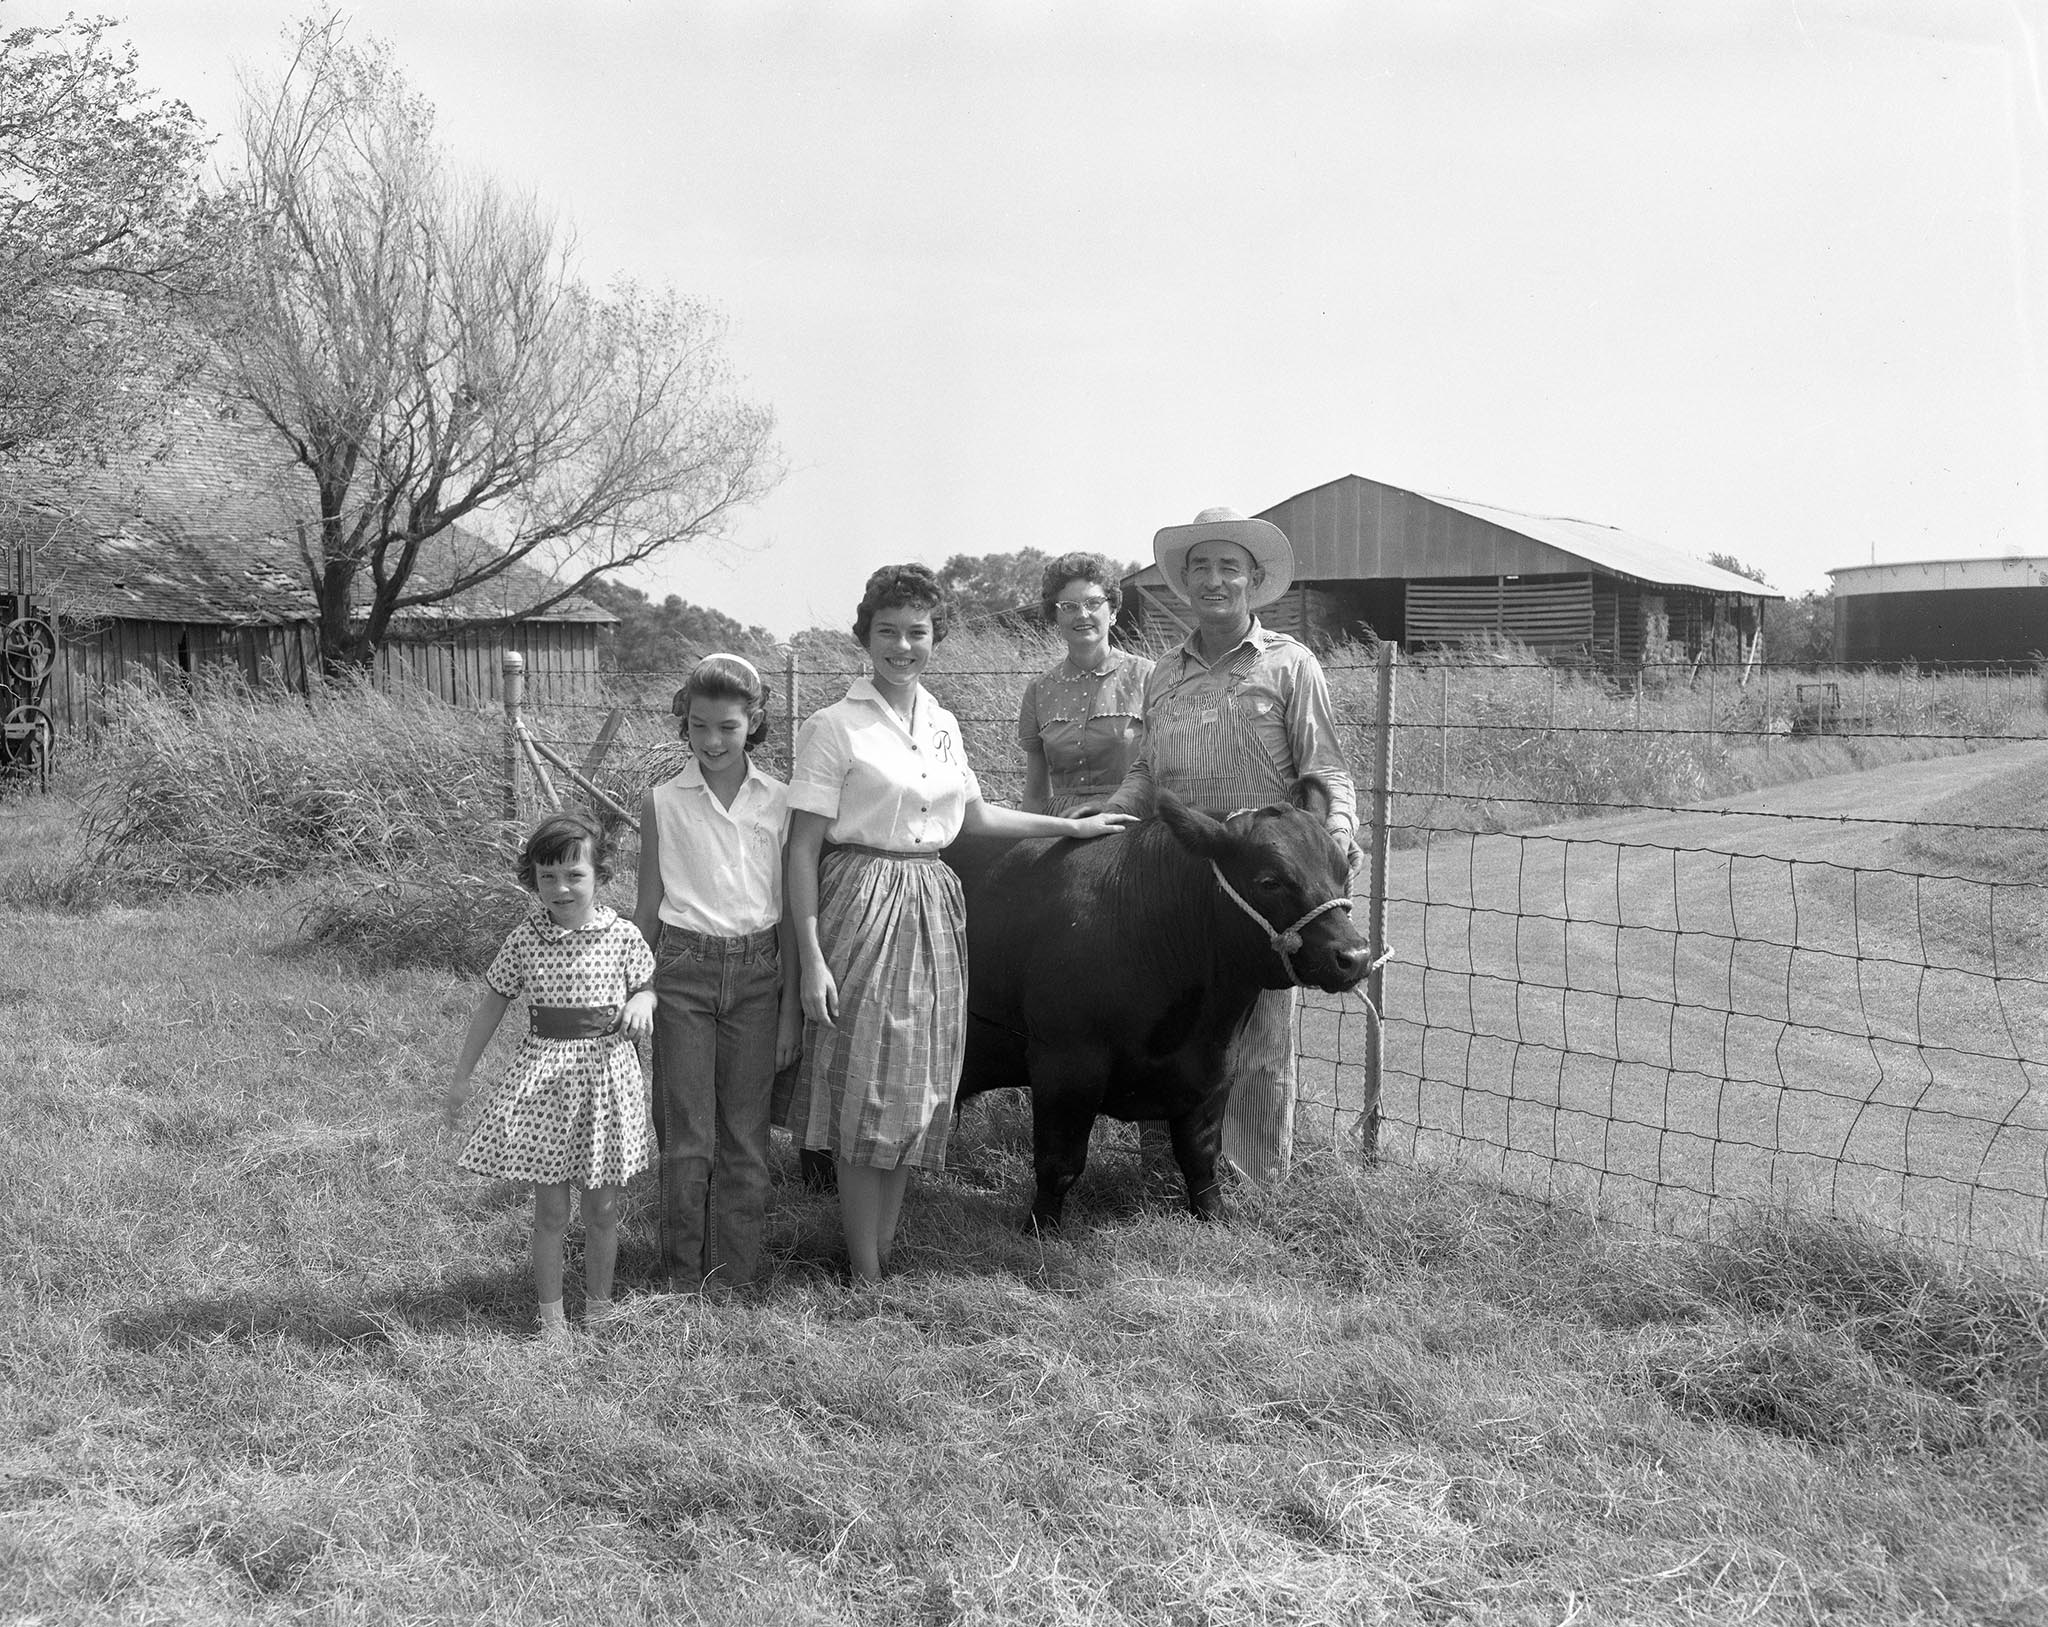 The 1960 Farm Family of the Year contest was limited to families who had lived on an Oklahoma farm for at least the last five years with at least 60 percent of their income coming directly from farming or ranching. The 1960 award was presented to the Darold Butler family of Pauls Valley. The Butlers and their five daughters lived on a highly diversified farm in Garvin County, where they raised black and red Angus cattle, alfalfa, corn, cotton, broomcorn, maize, soybeans, wheat, oats, vetch and barley.